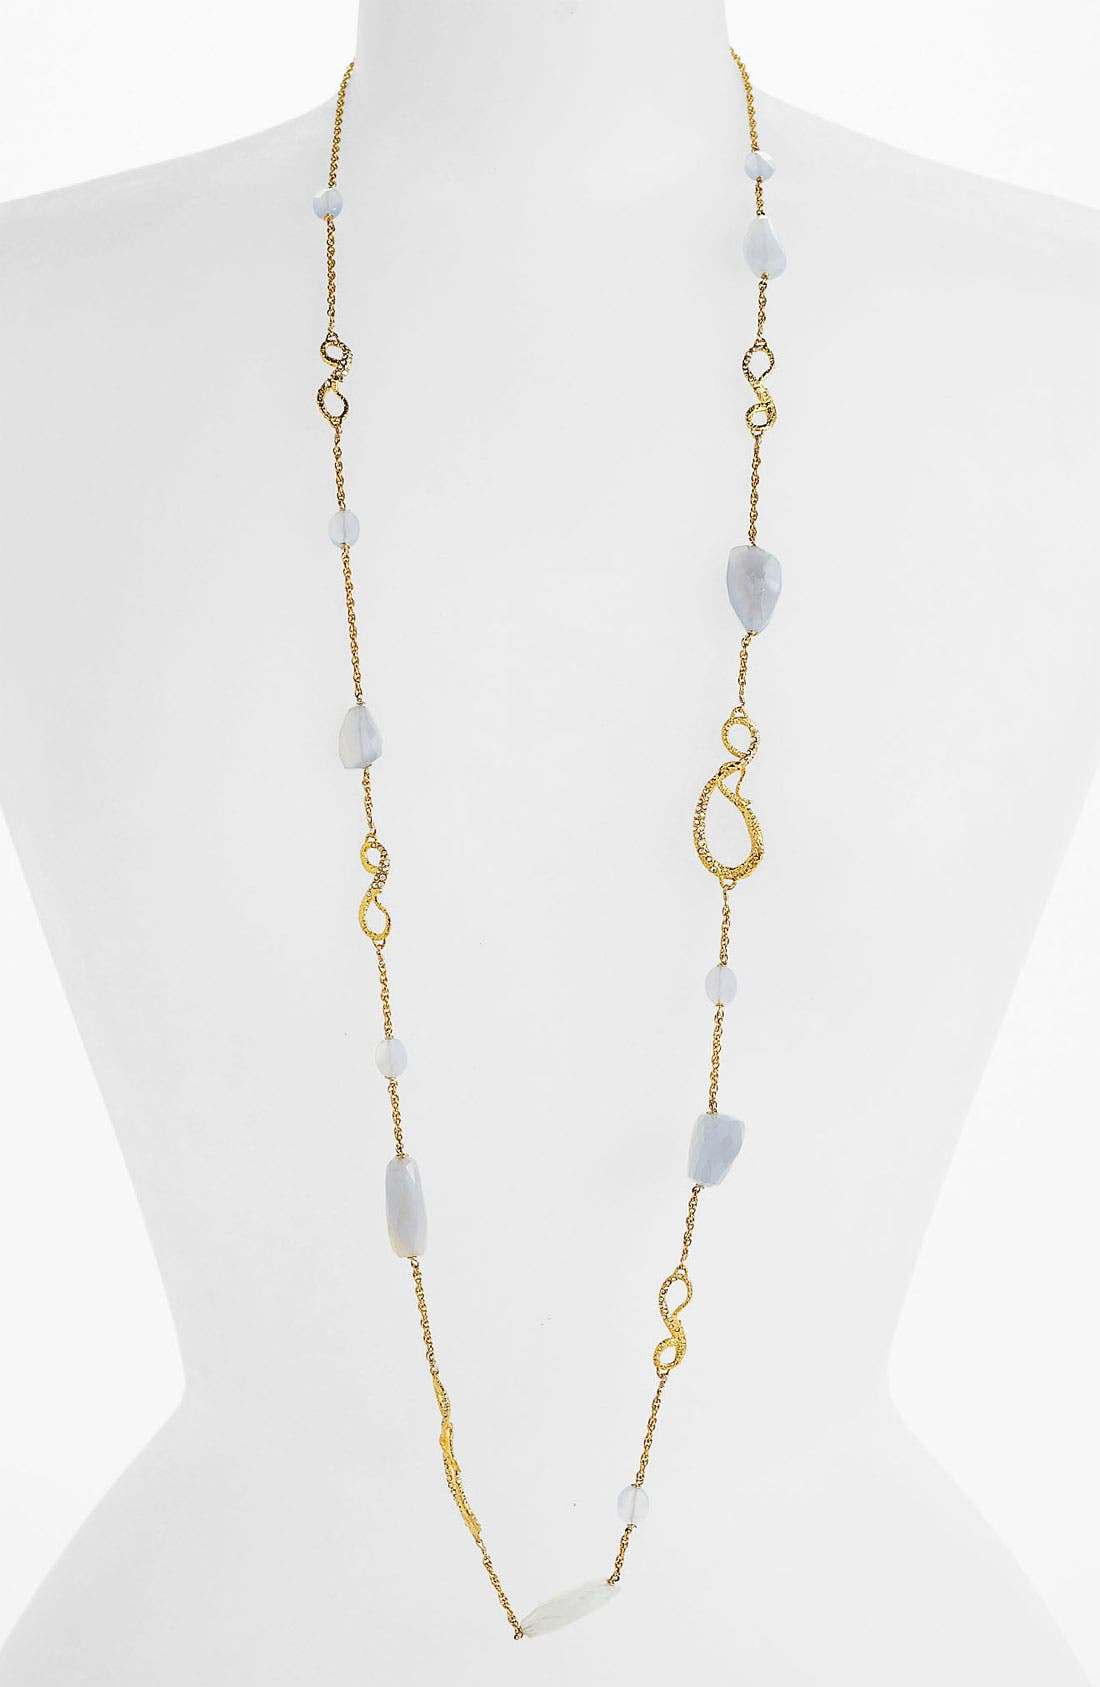 Main Image - Alexis Bittar 'Elements - Siyabona' Extra Long Station Necklace